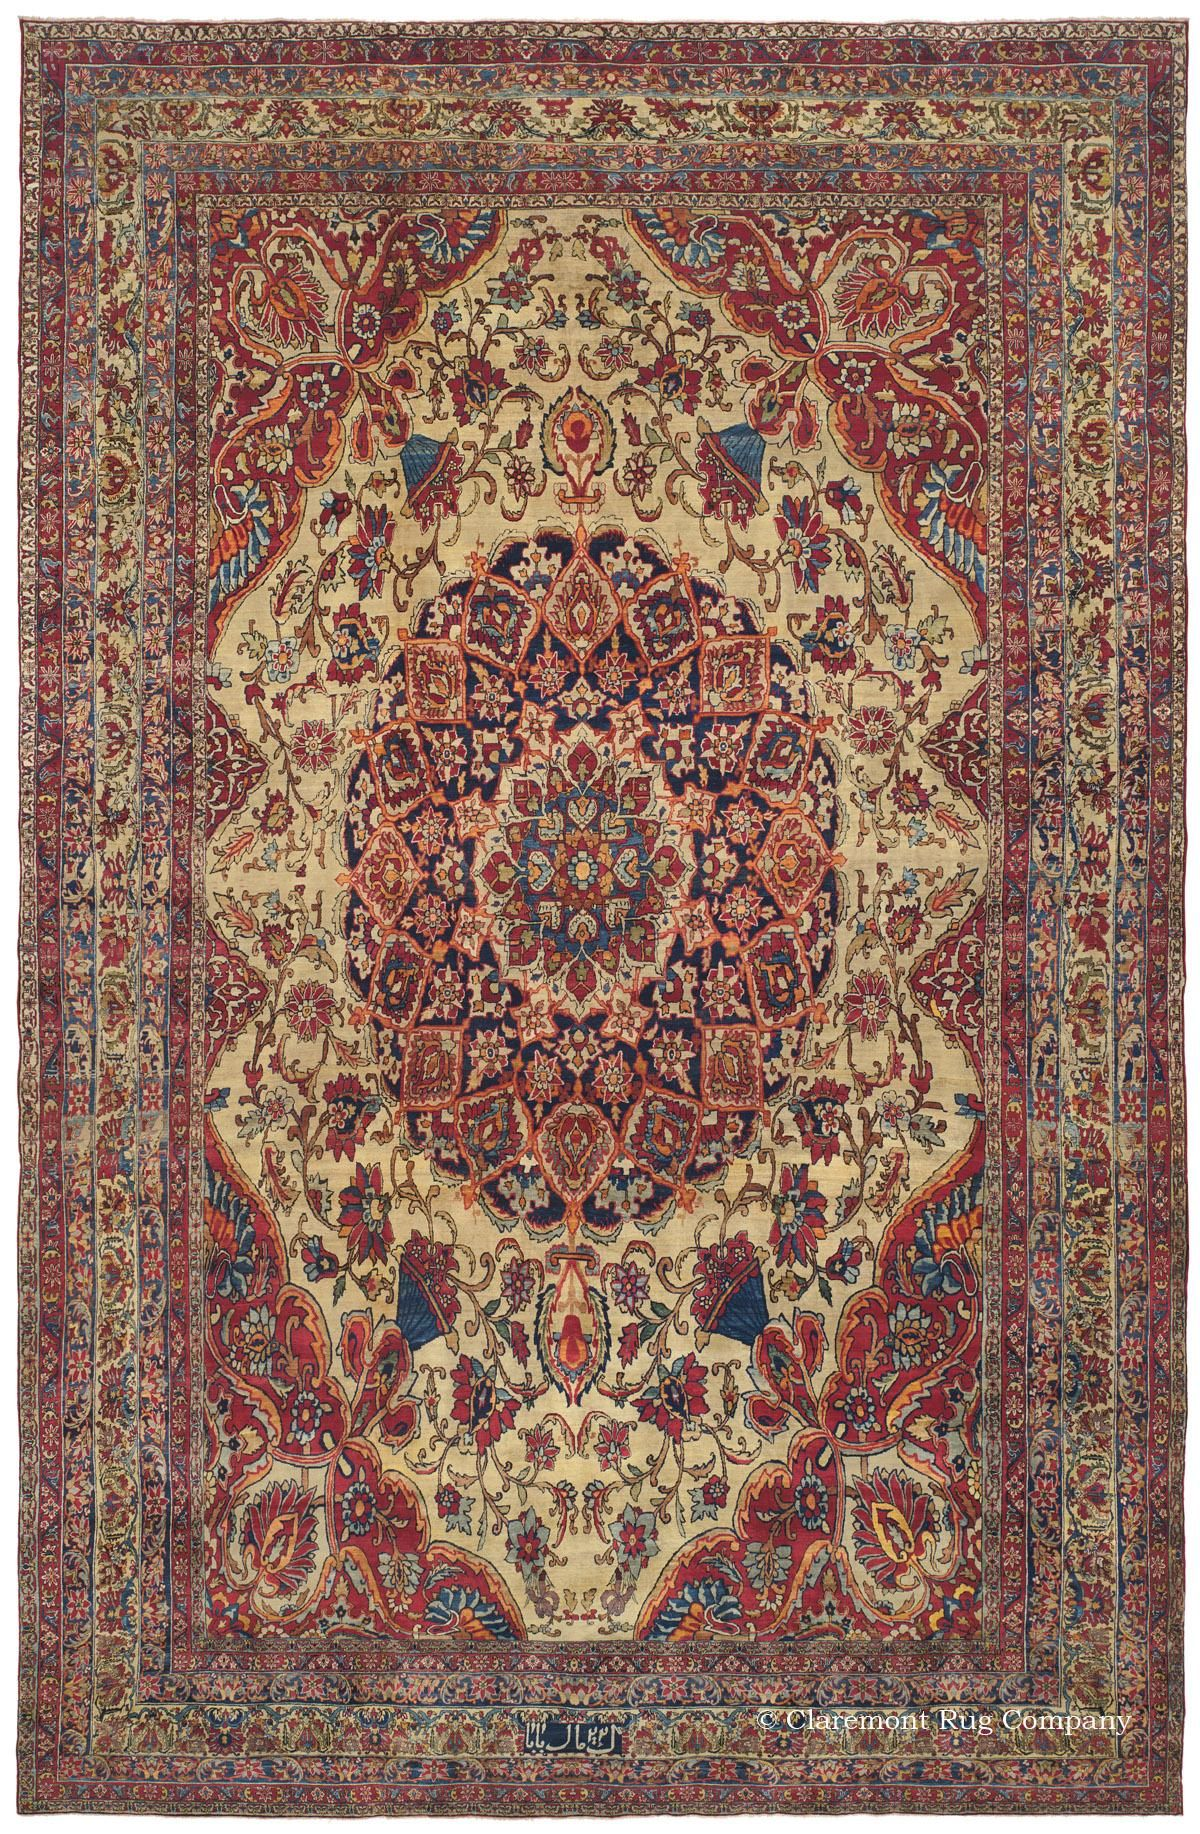 Laver Kirman Malek Baba 12ft 9in X 19ft 5in 2nd Quarter 19th Century This Museum Level Antique Carpet Rugs Antique Persian Carpet Antique Oriental Rugs